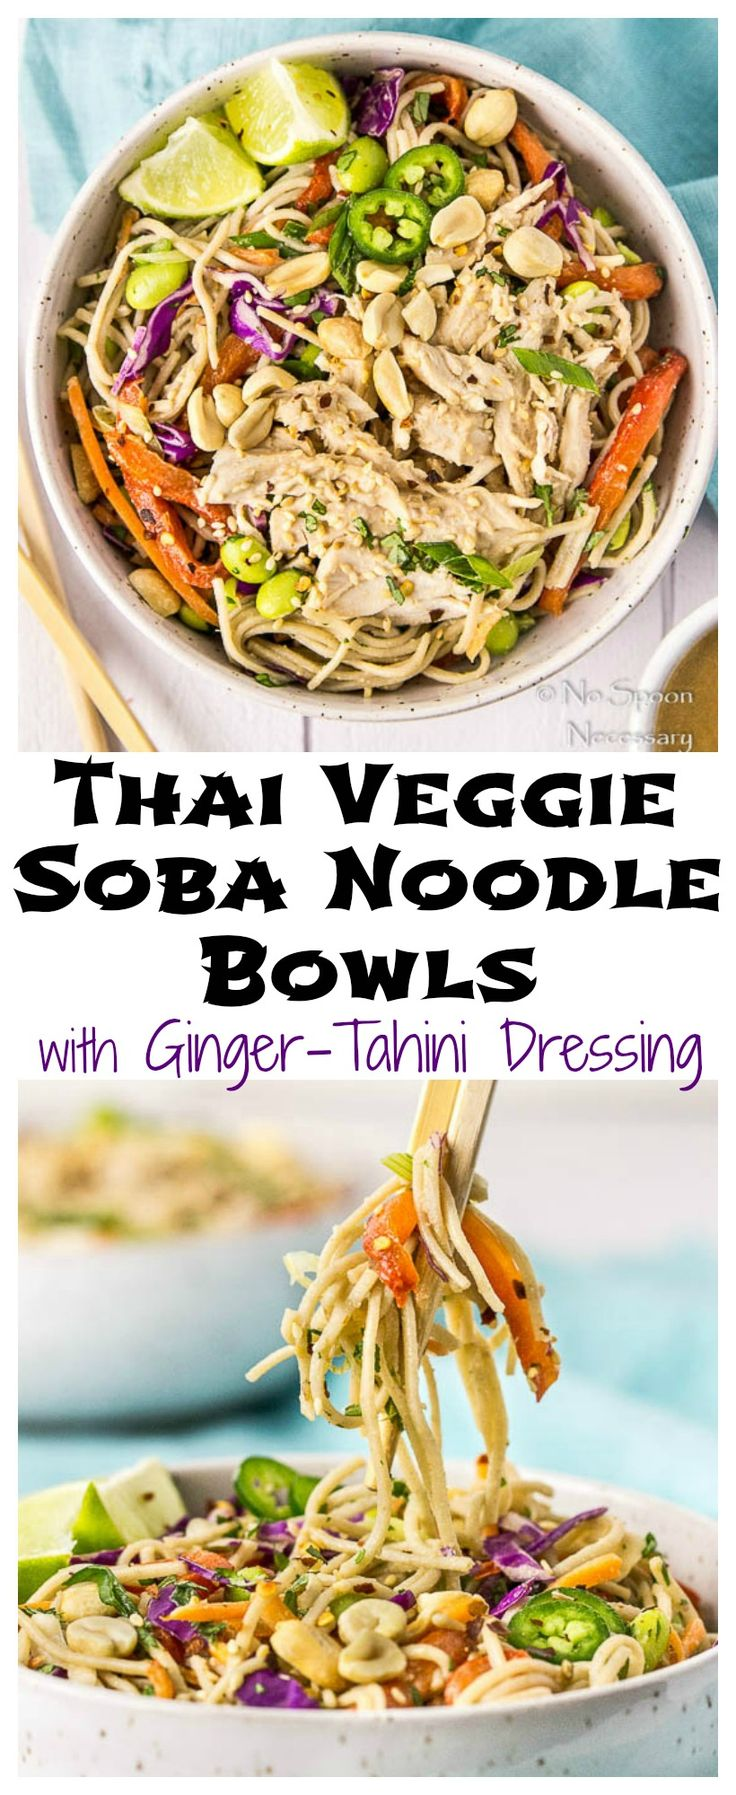 Thai Veggie Soba Noodle Bowls with Ginger-Tahini Dressing.  Ready in 30 minutes or less!